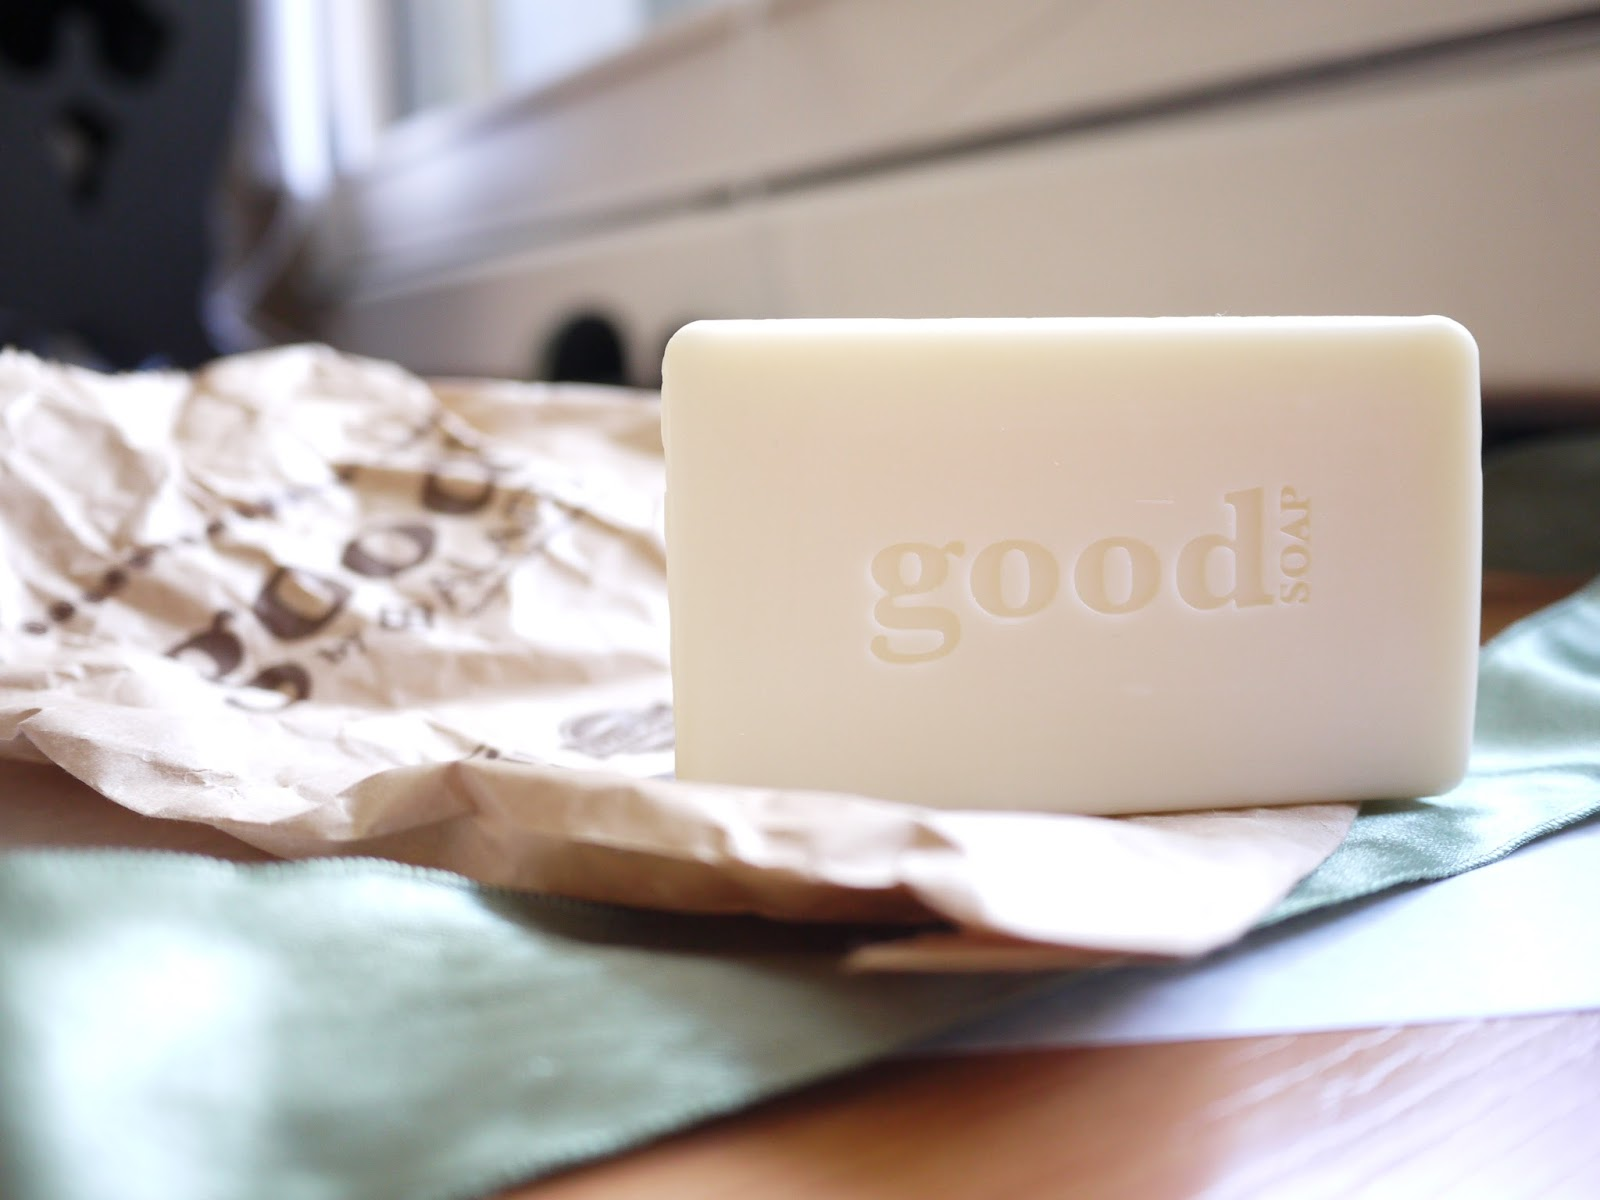 Good Soap by Alaffia vanilla coconut mint soap review